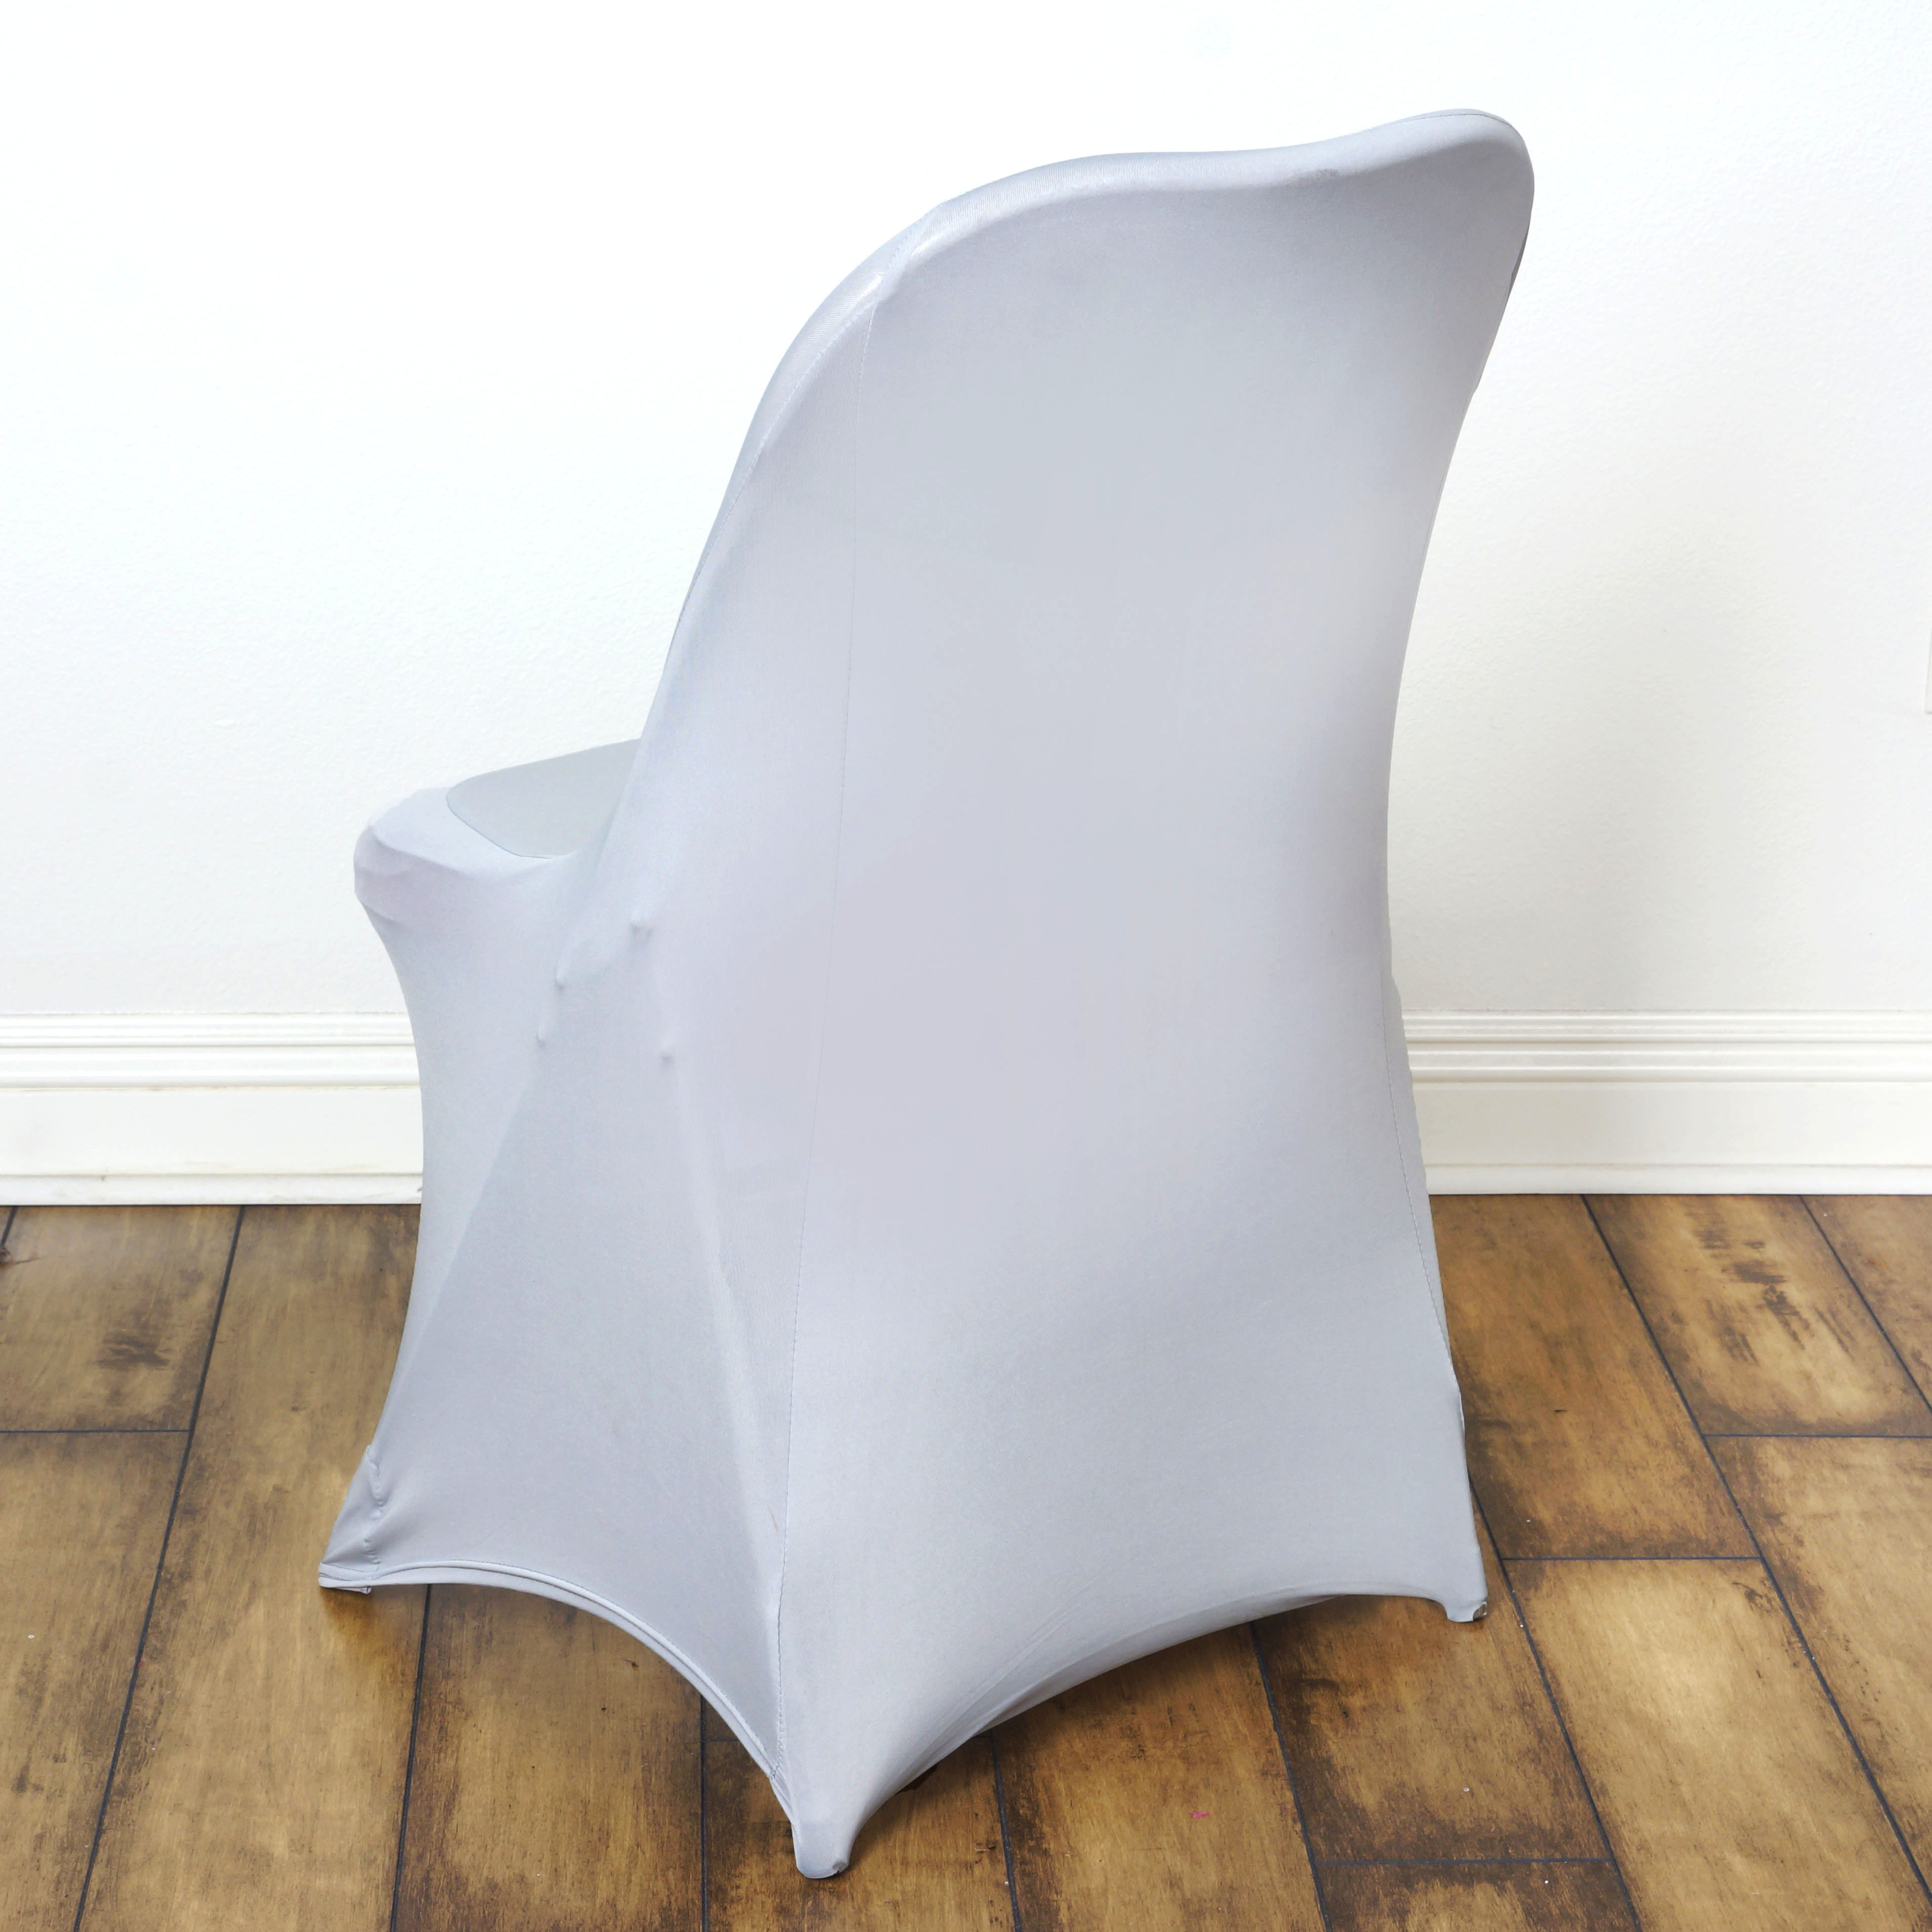 Balsacircle Spandex Stretchable Folding Chair Covers Slipcovers For